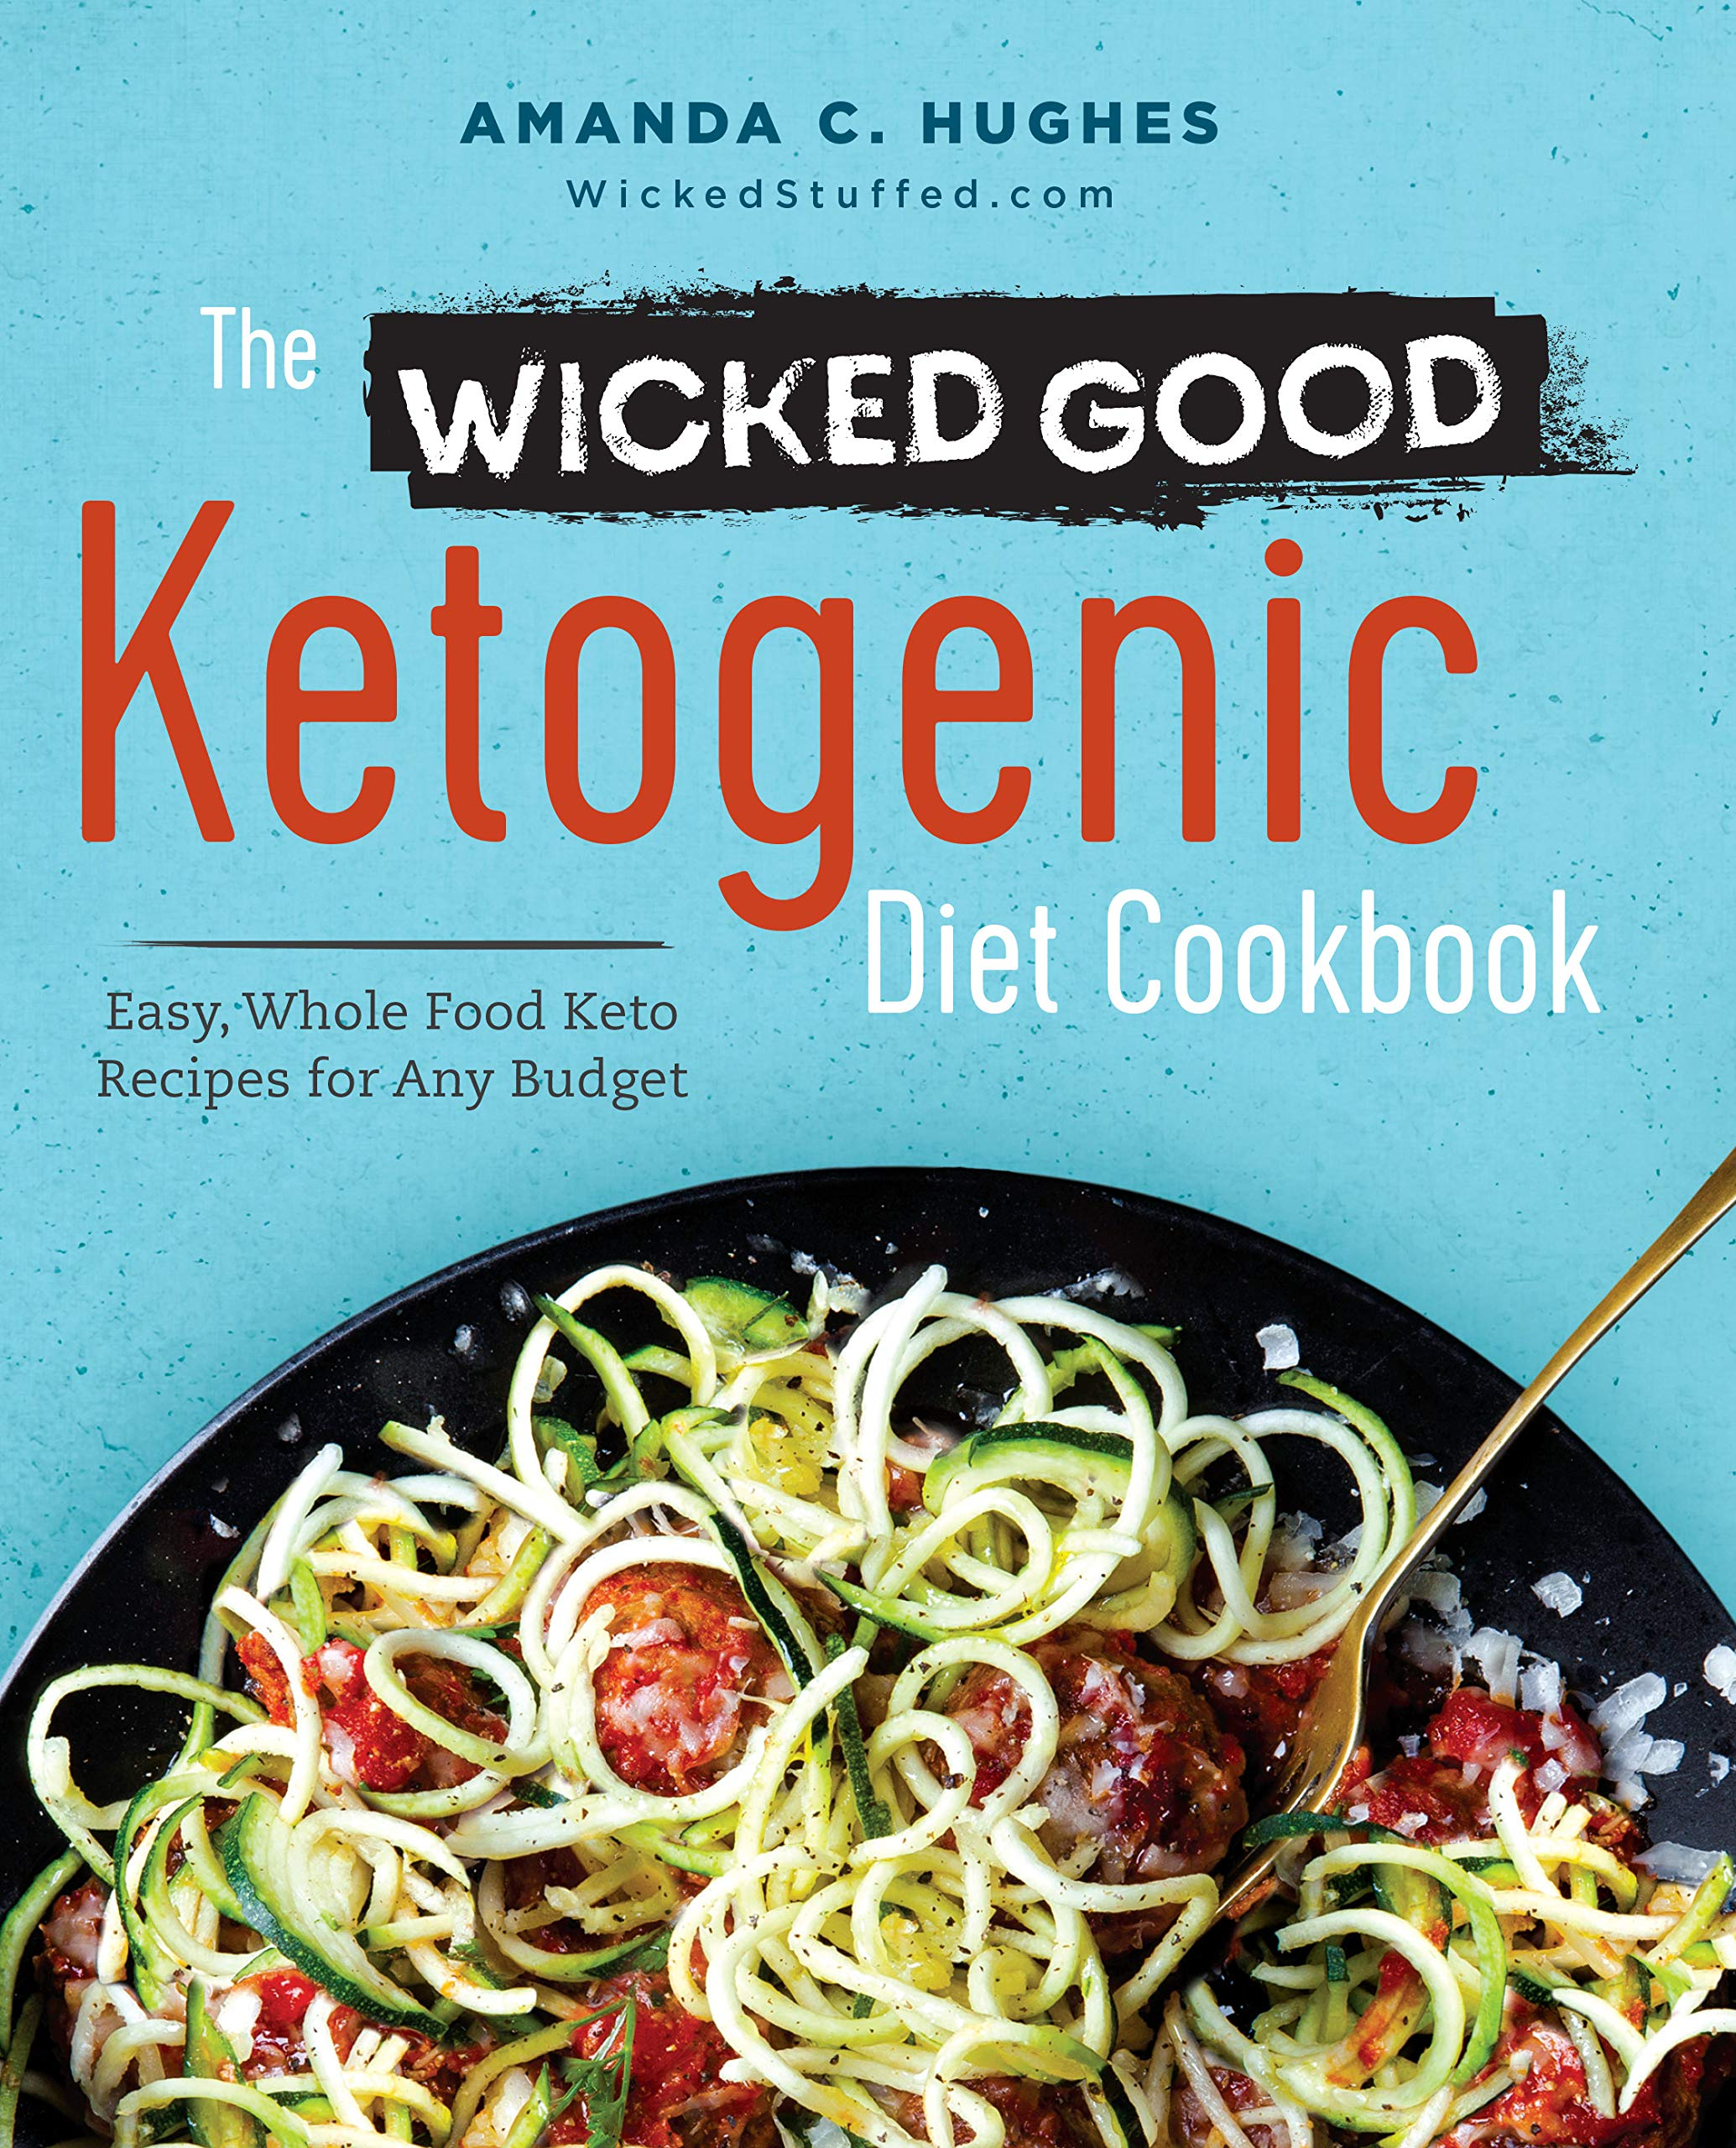 The Wicked Good Ketogenic Diet Cookbook by Amanda Hughes